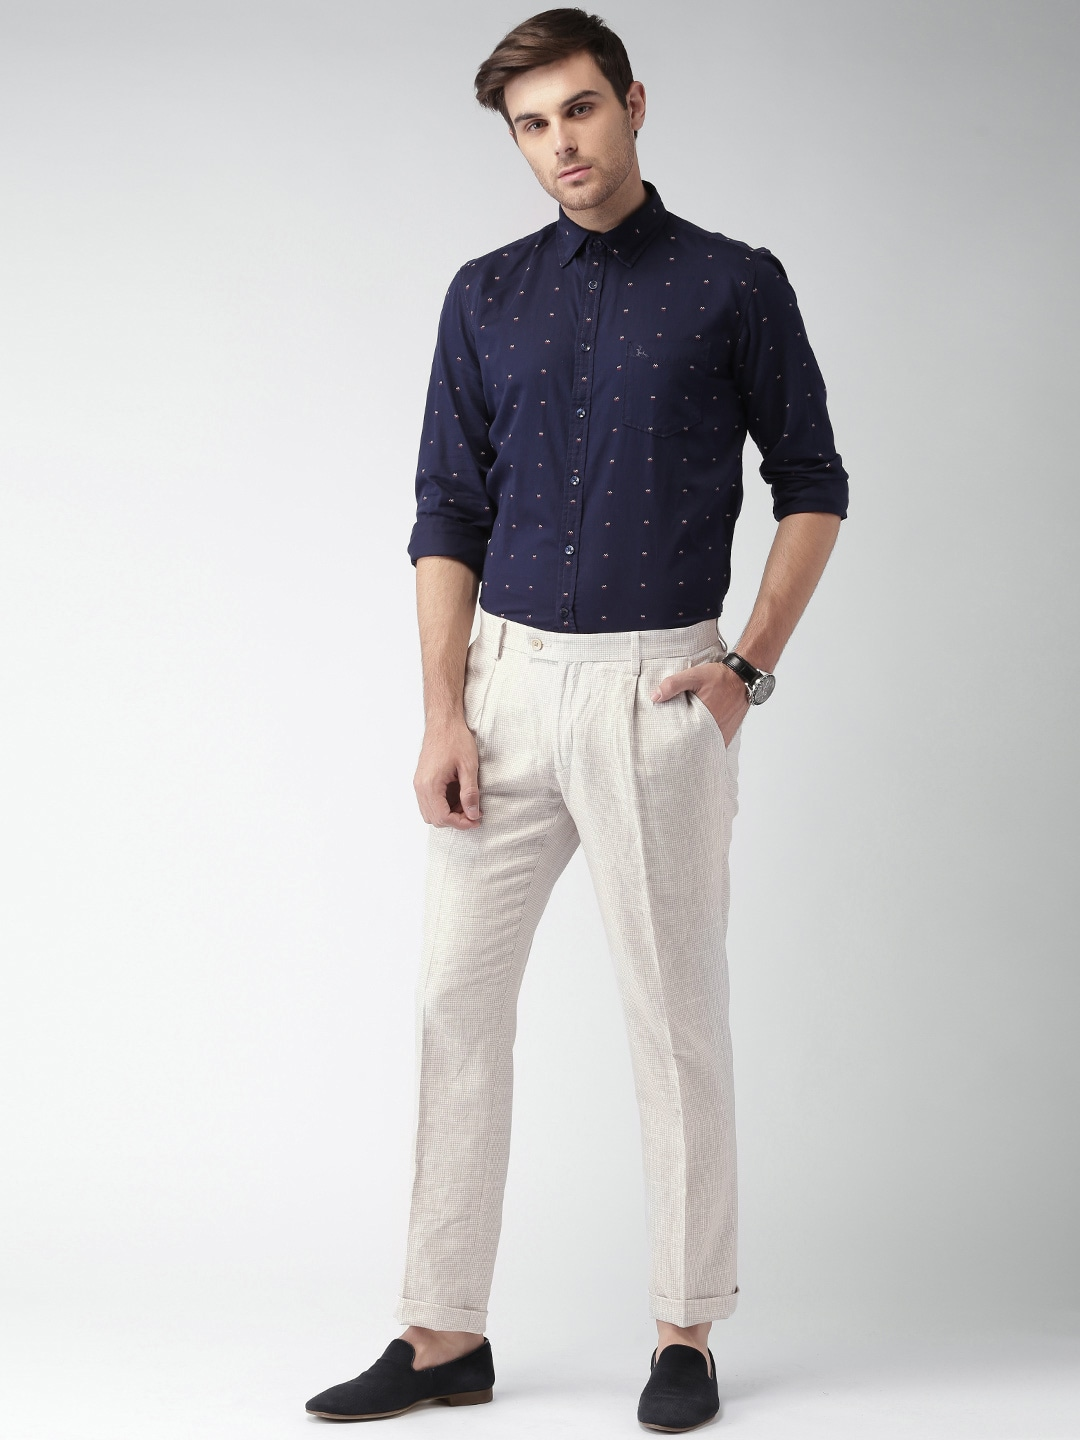 The Gallery For --u0026gt; Formal Trousers And Shirts For Men